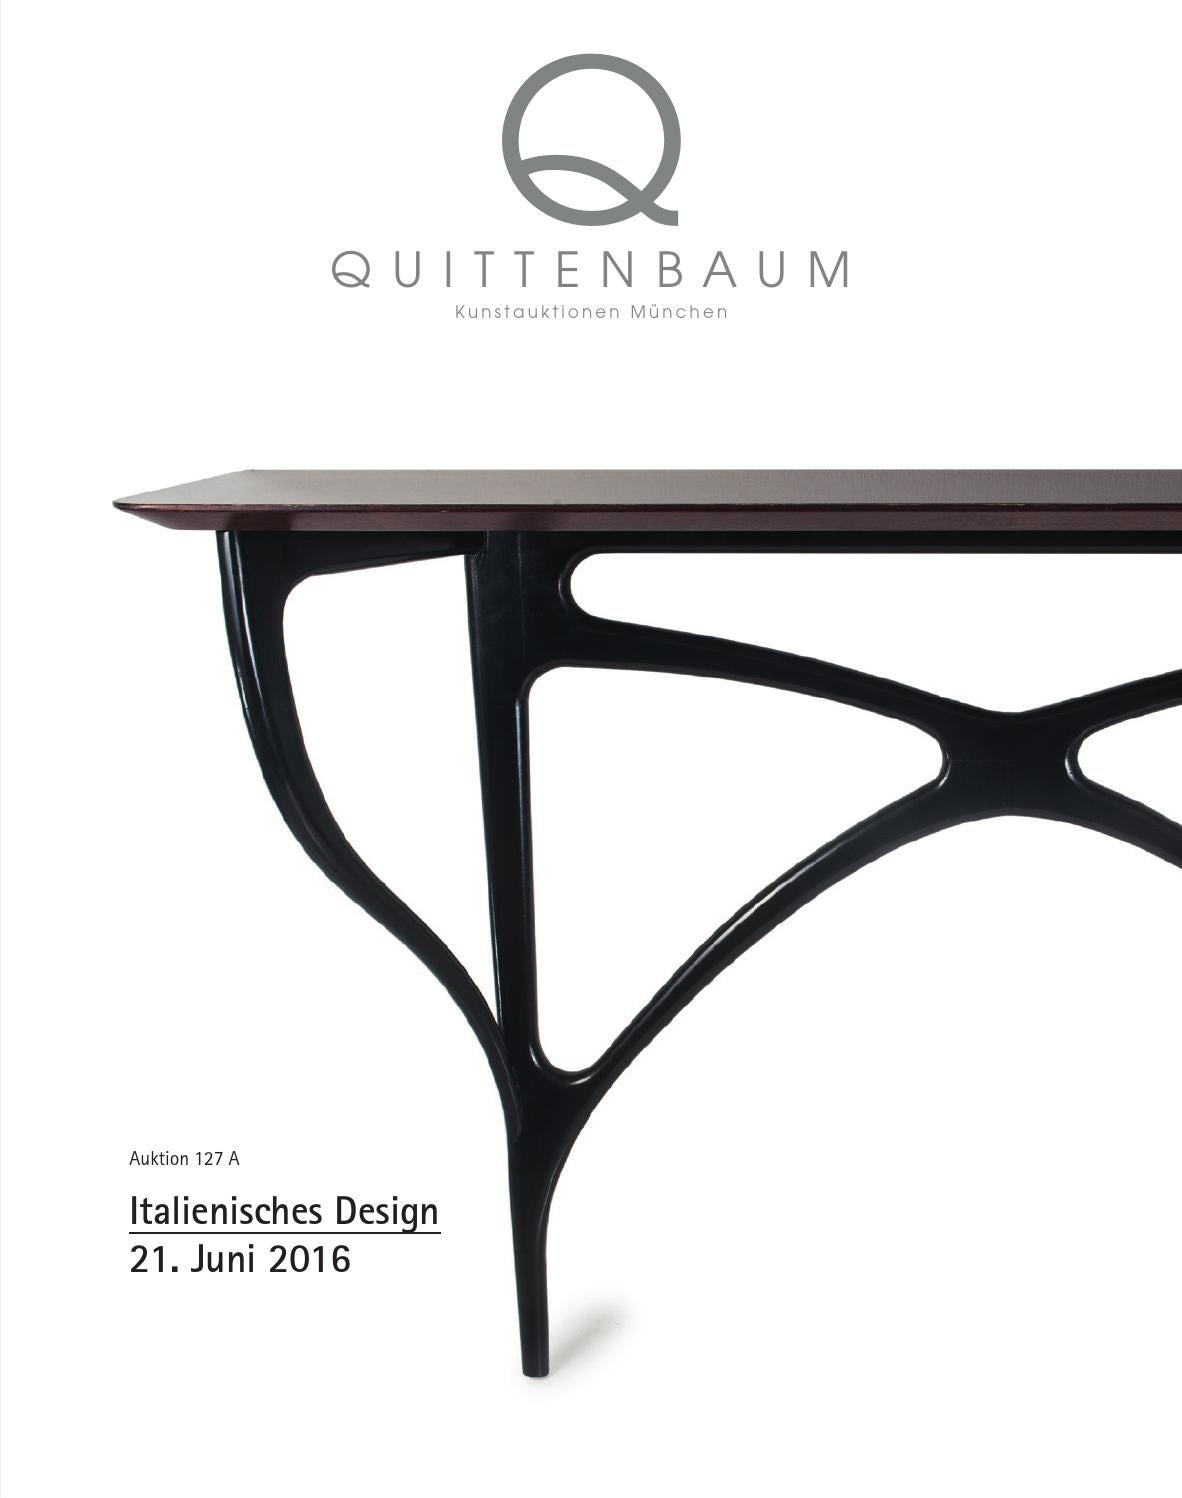 Saporiti Italia Designer Sessel Auction 127 A Italian Design Quittenbaum Art Auctions By